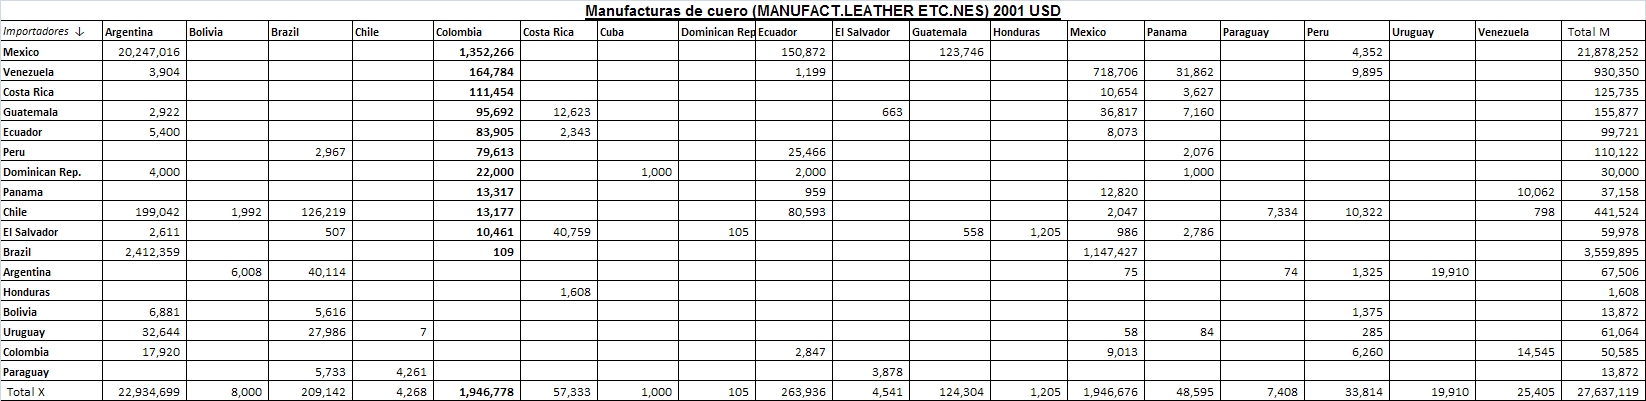 Manufacturas de cuero (MANUFACT.LEATHER ETC.